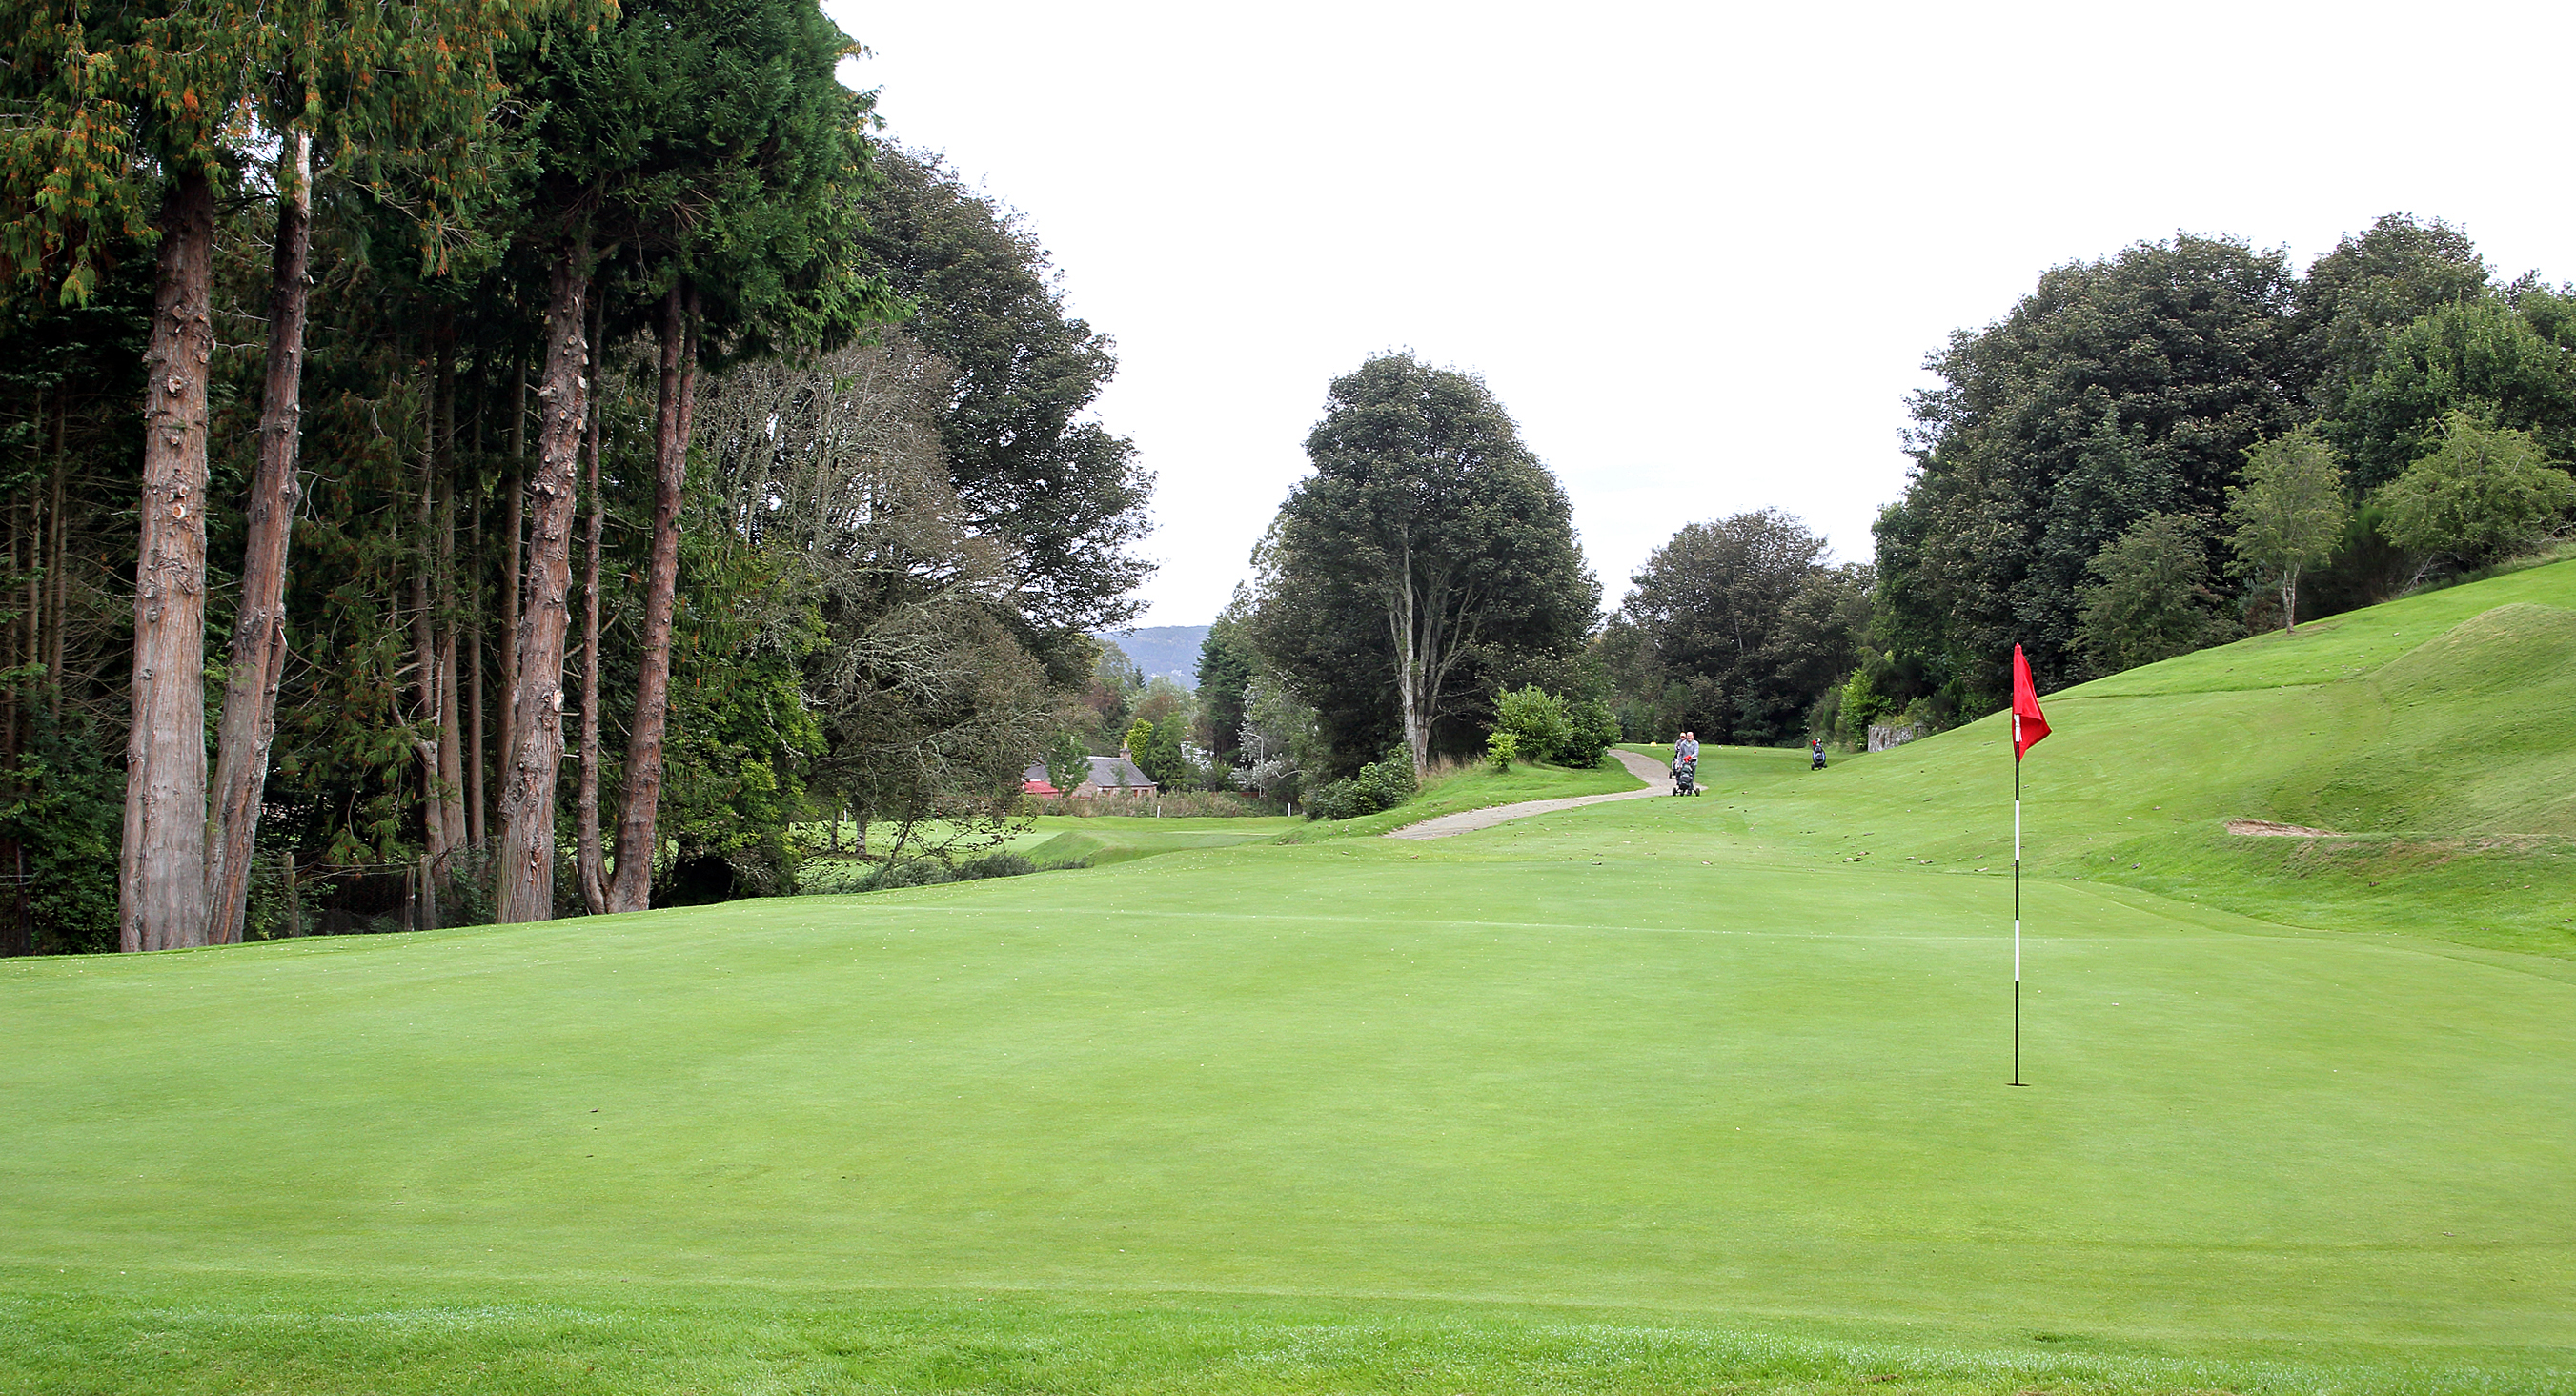 15th green to the tee